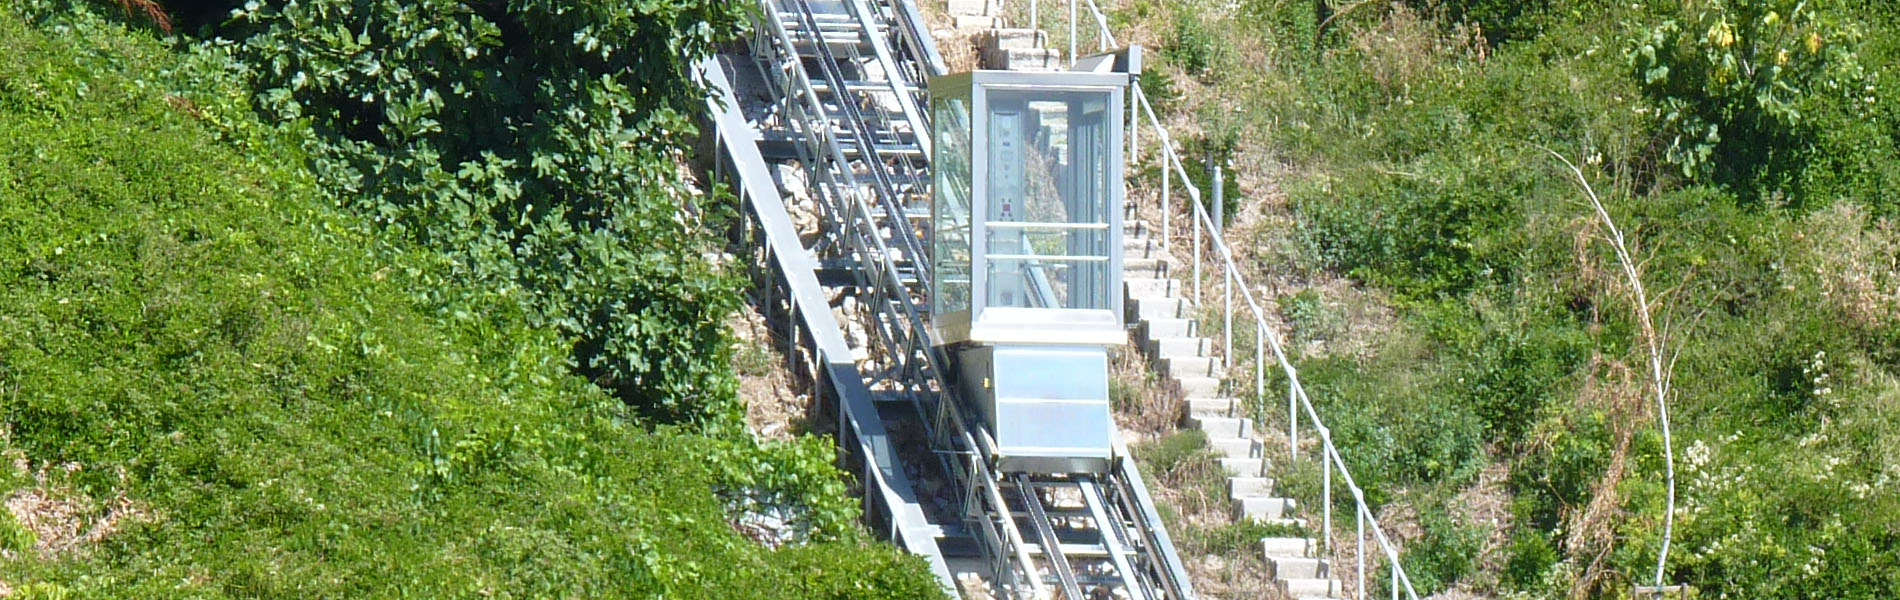 Inclined lifts